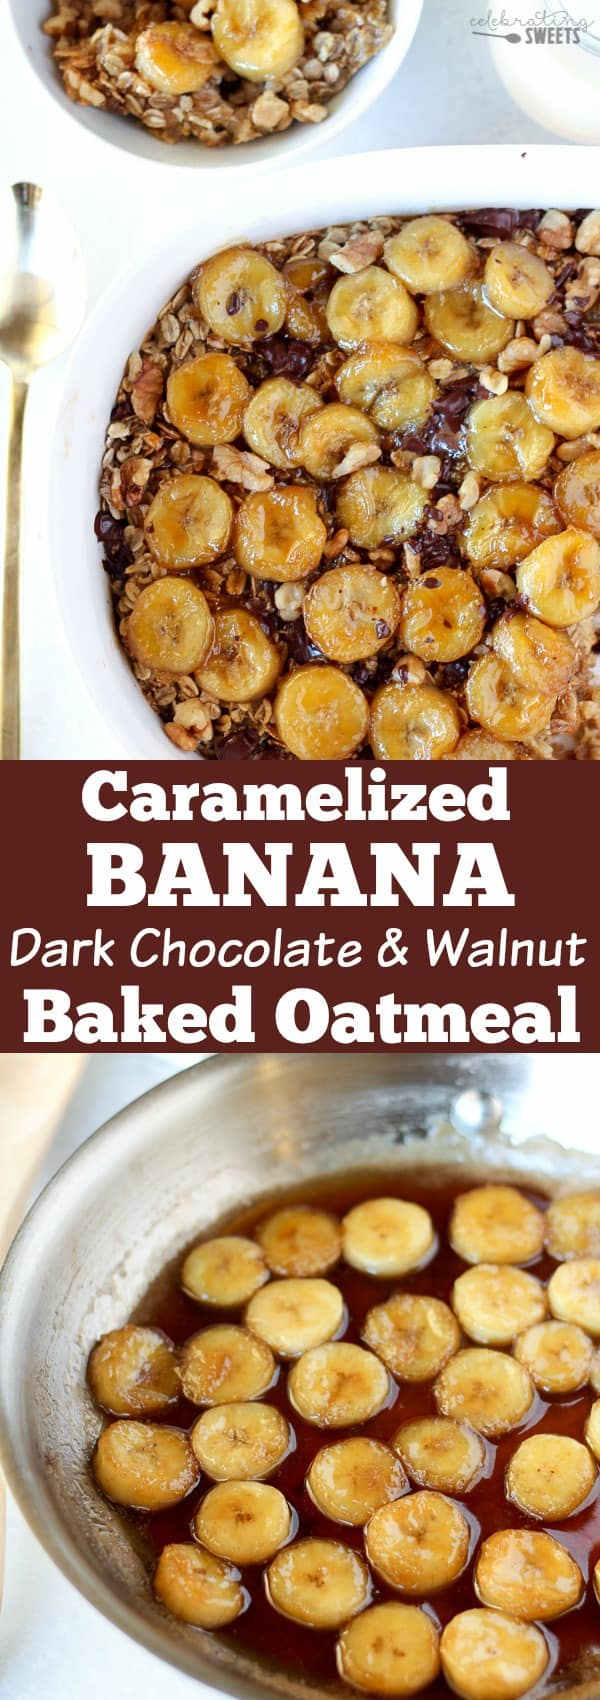 Caramelized Banana, Dark Chocolate & Walnut Baked Oatmeal